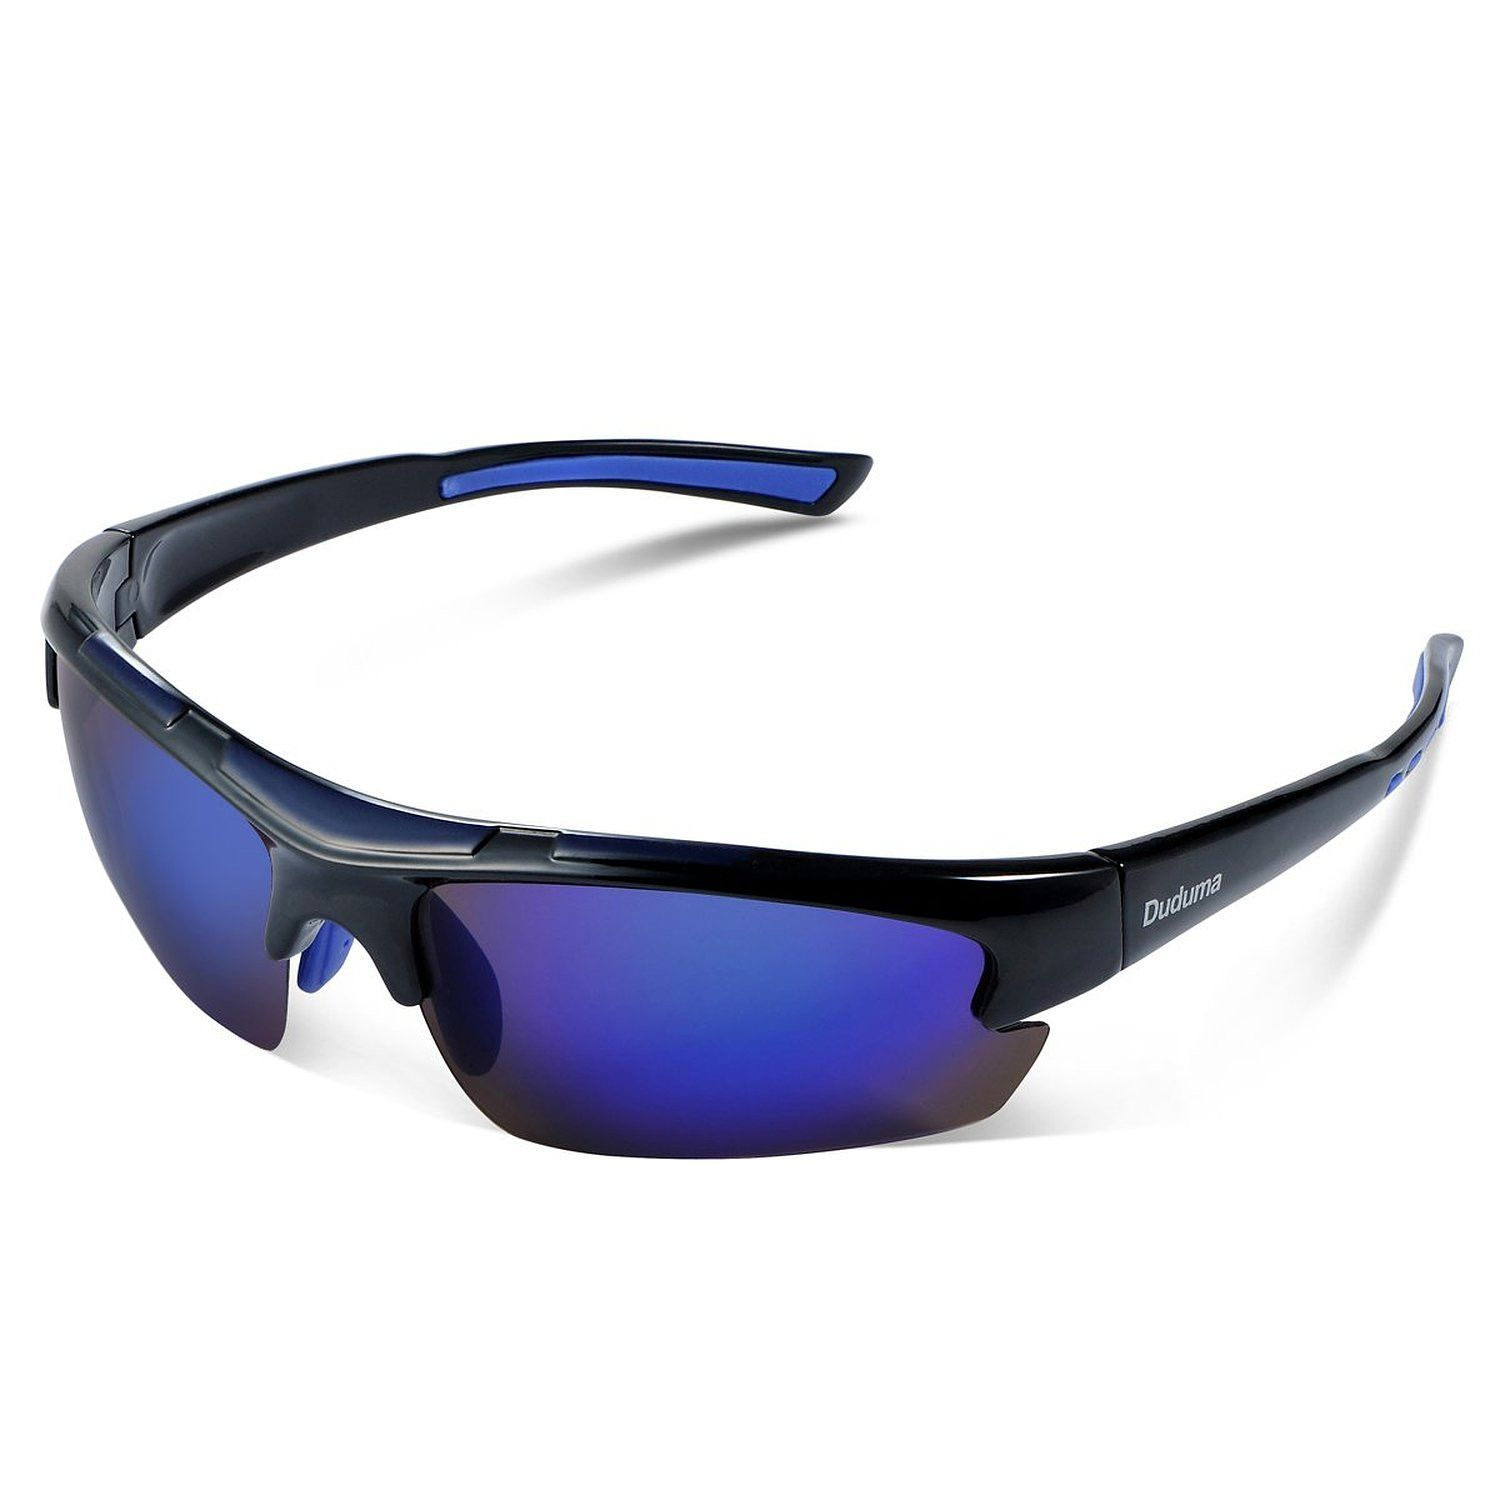 e978bbd70d Duduma Polarized Sports Sunglasses for Men Women Baseball Running Cycling  Fishing Driving Golf Unbreakable Frame (black blue)